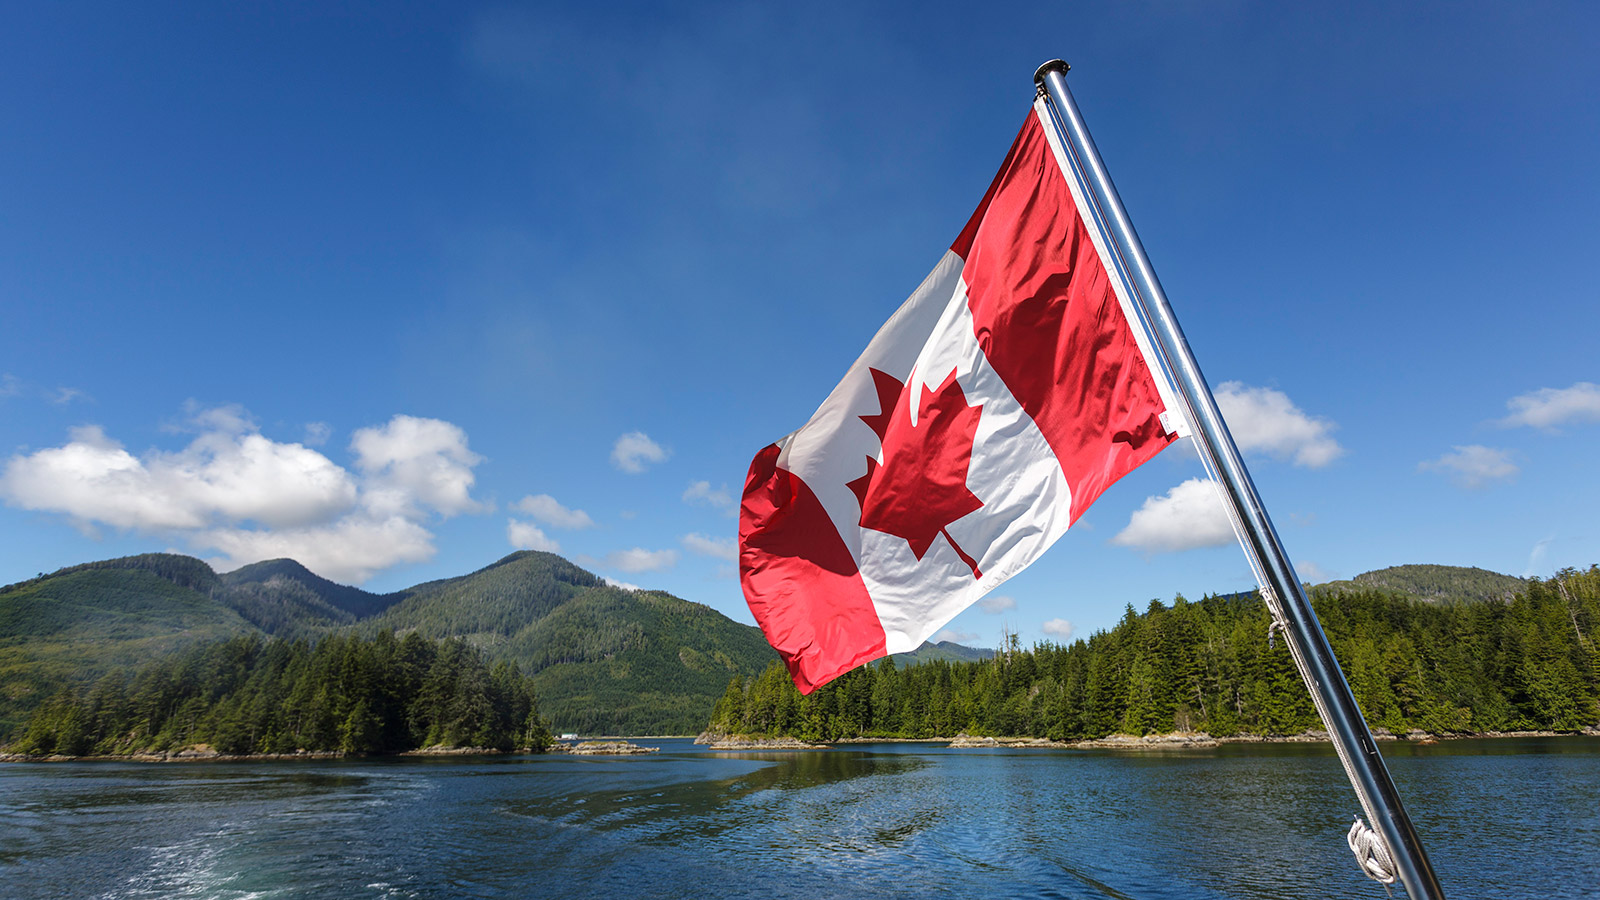 The Canadian flag flies from the stern of the Uchuck 111 as it traverses Esperanza Inlet, British Columbia, Canada. (Ron Watts/All Canada Photos/Corbis)